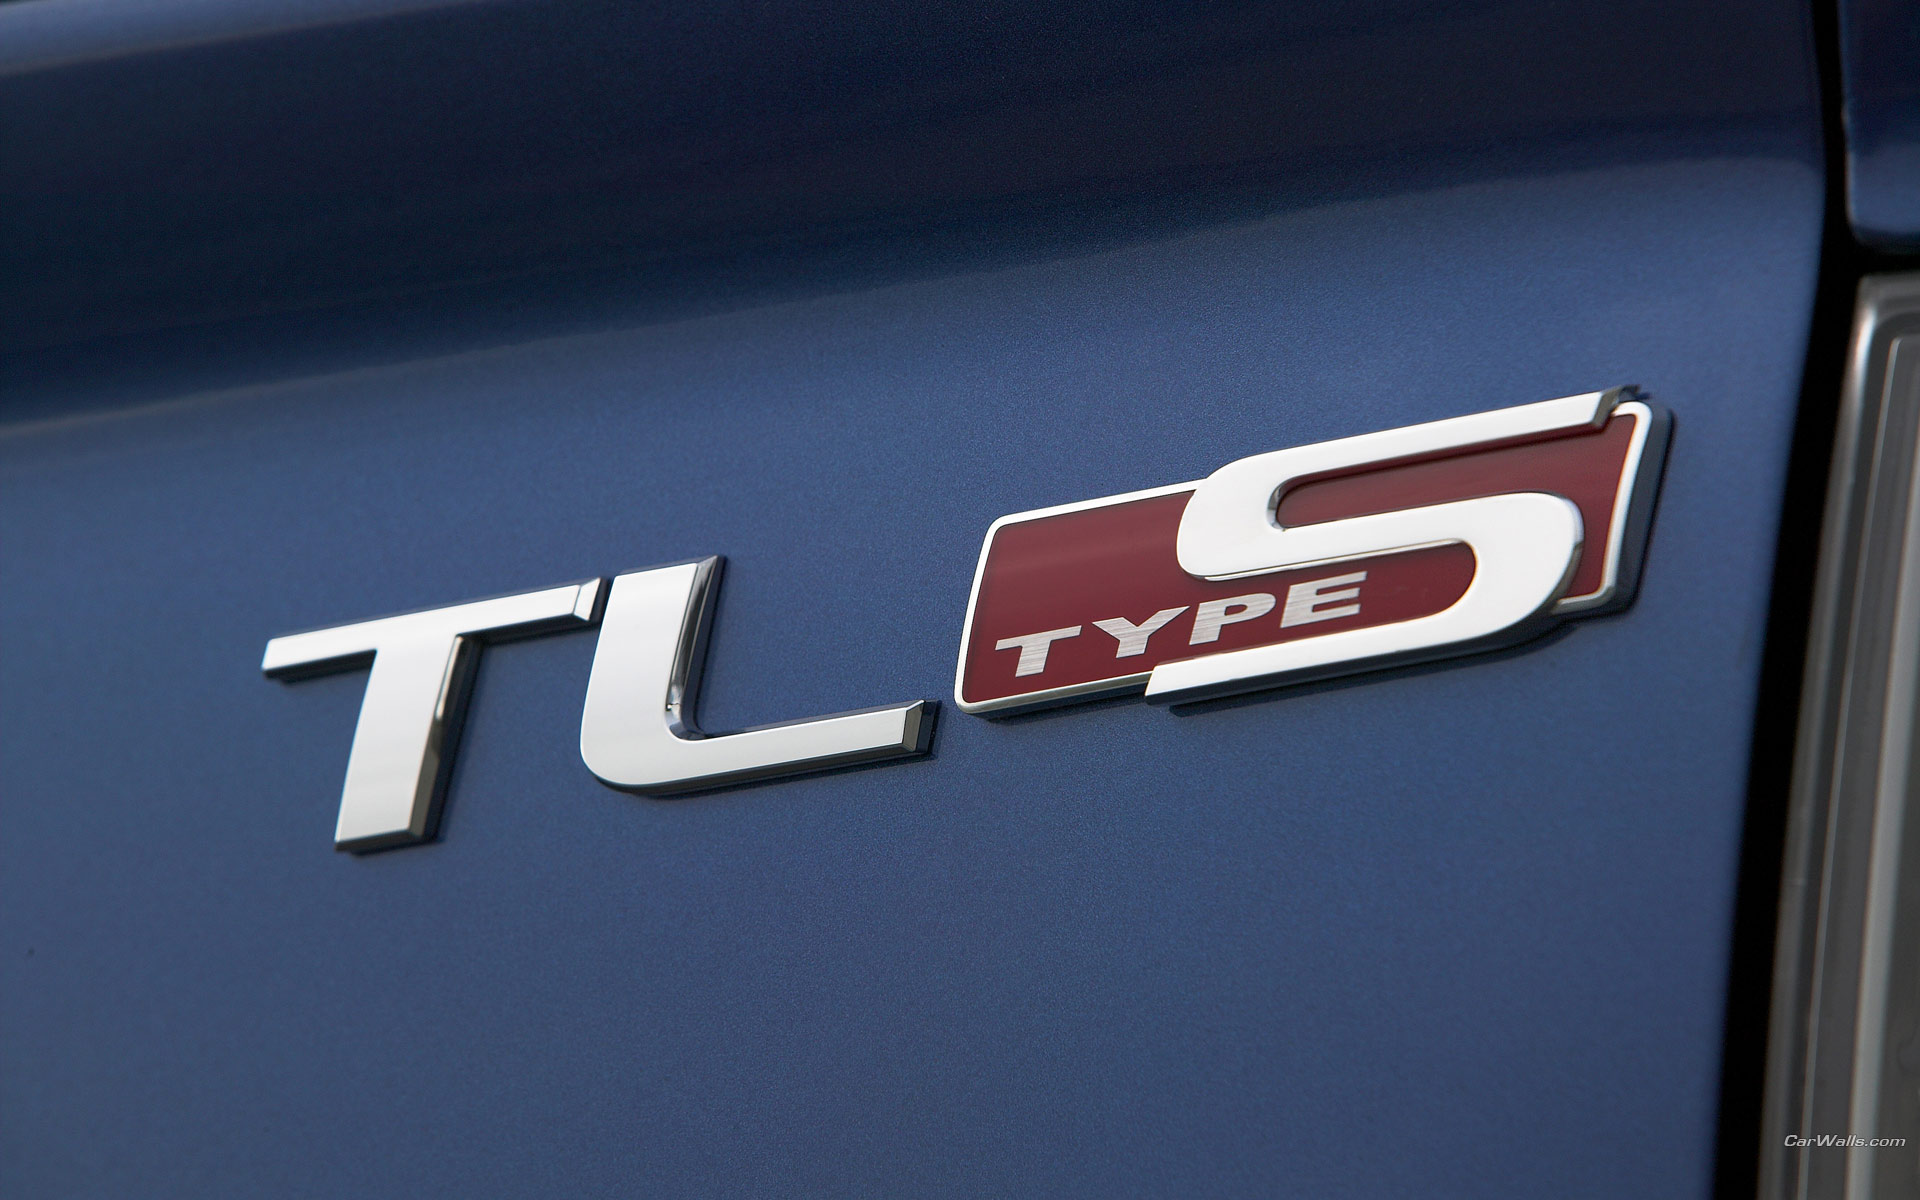 Download High quality Acura TL type S logo Acura Wallpaper Num 1920x1200